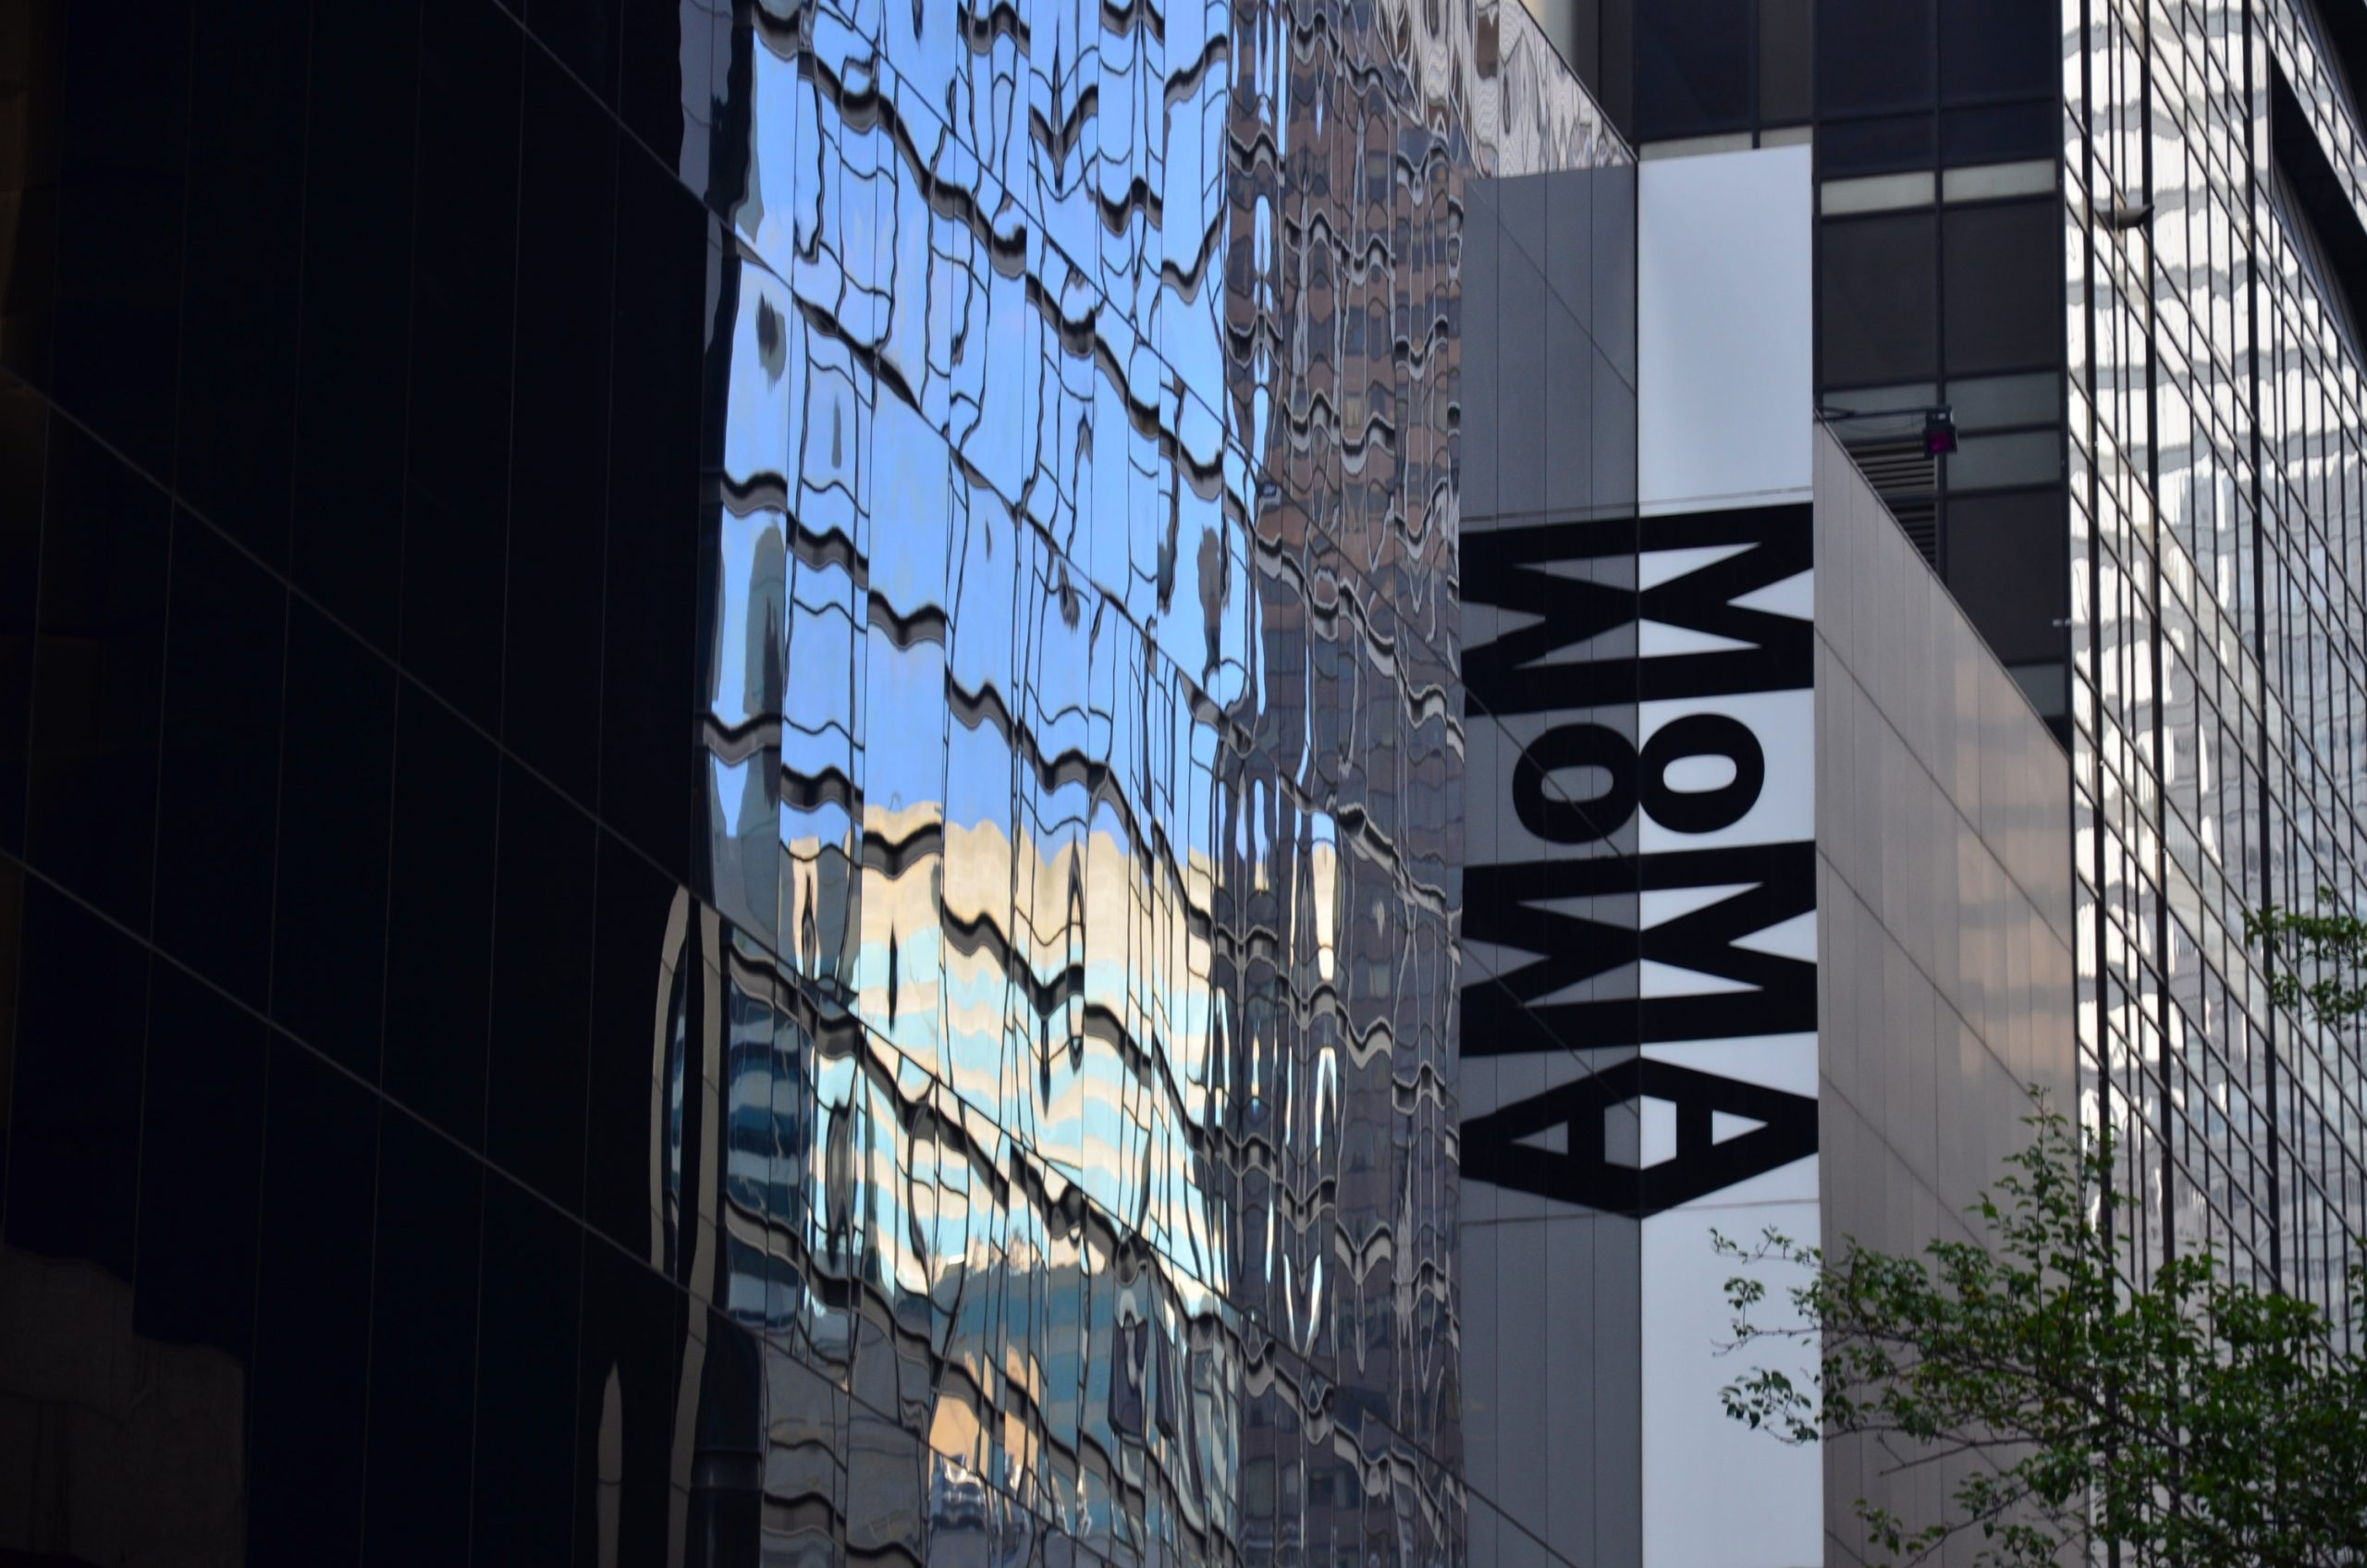 The outside of the MoMA in New York City